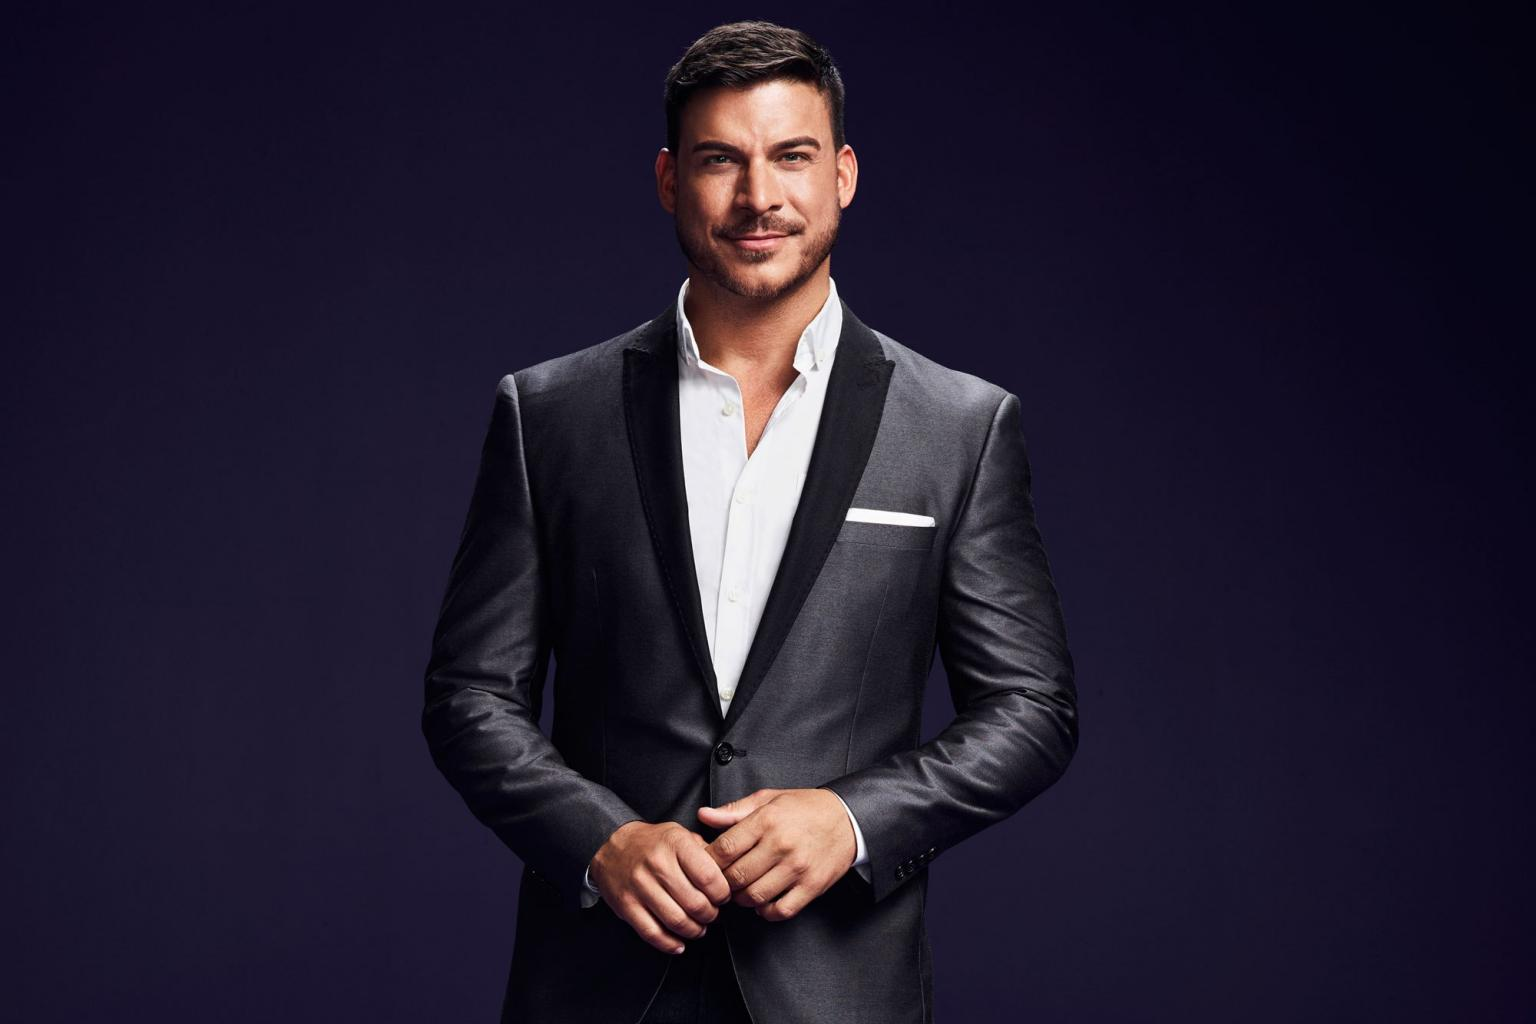 Is Vanderpump Rules Star Jax Taylor Getting Married?